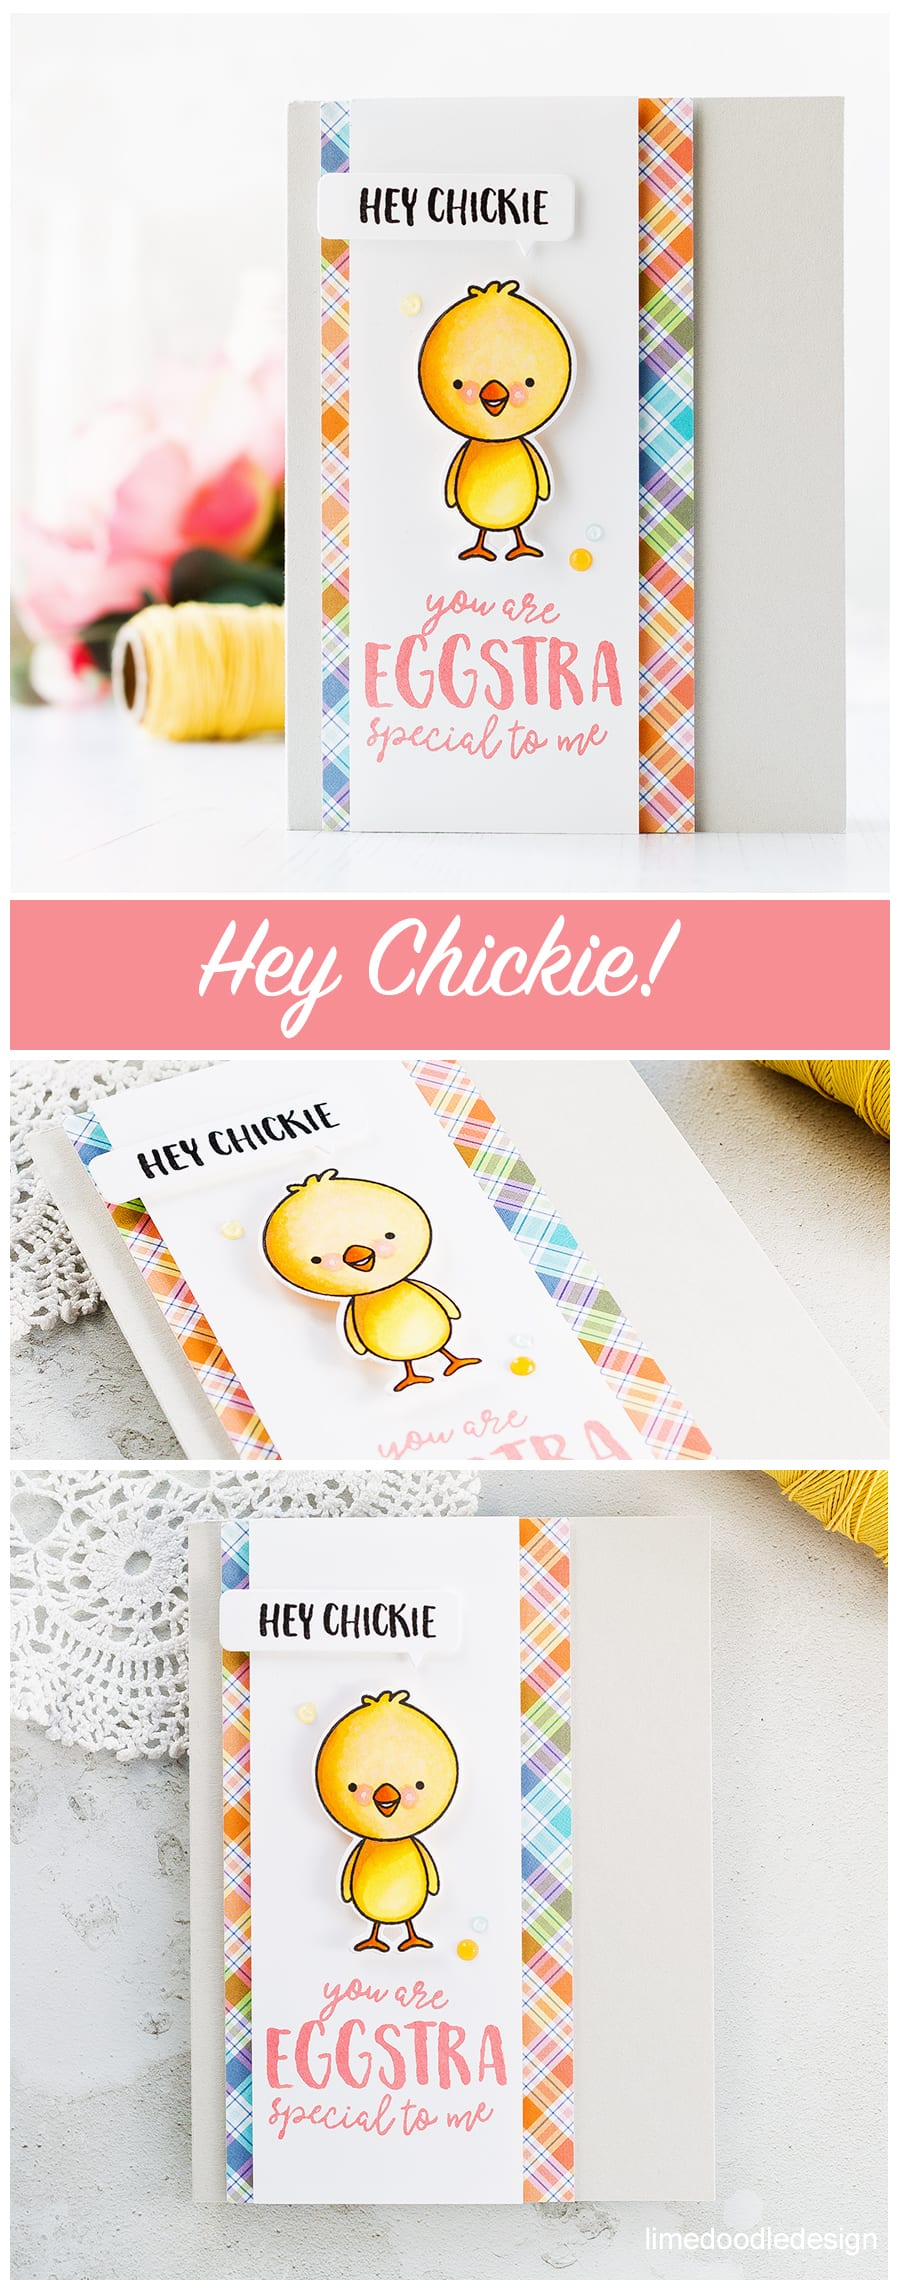 Eggstra Special card by Debby Hughes. Find out more about this Easter chick card by clicking on the following link: https://limedoodledesign.com/2017/04/eggstra-special/